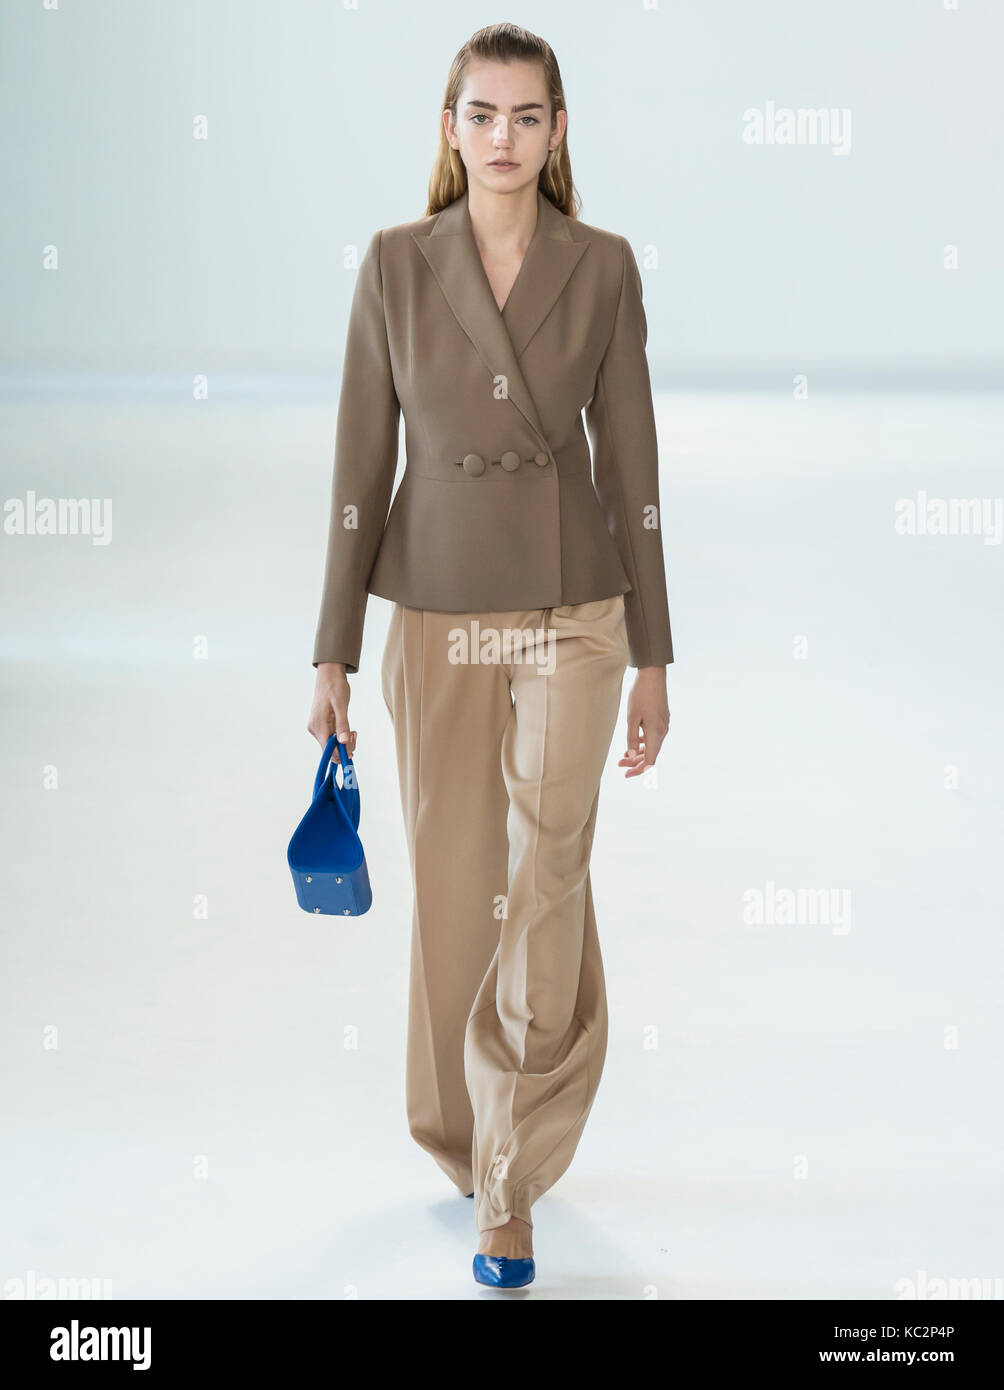 NEW YORK, NY - September 10, 2017: Shannon Thaler walks the runway at the Denibi Spring Summer 2018 fashion show - Stock Image